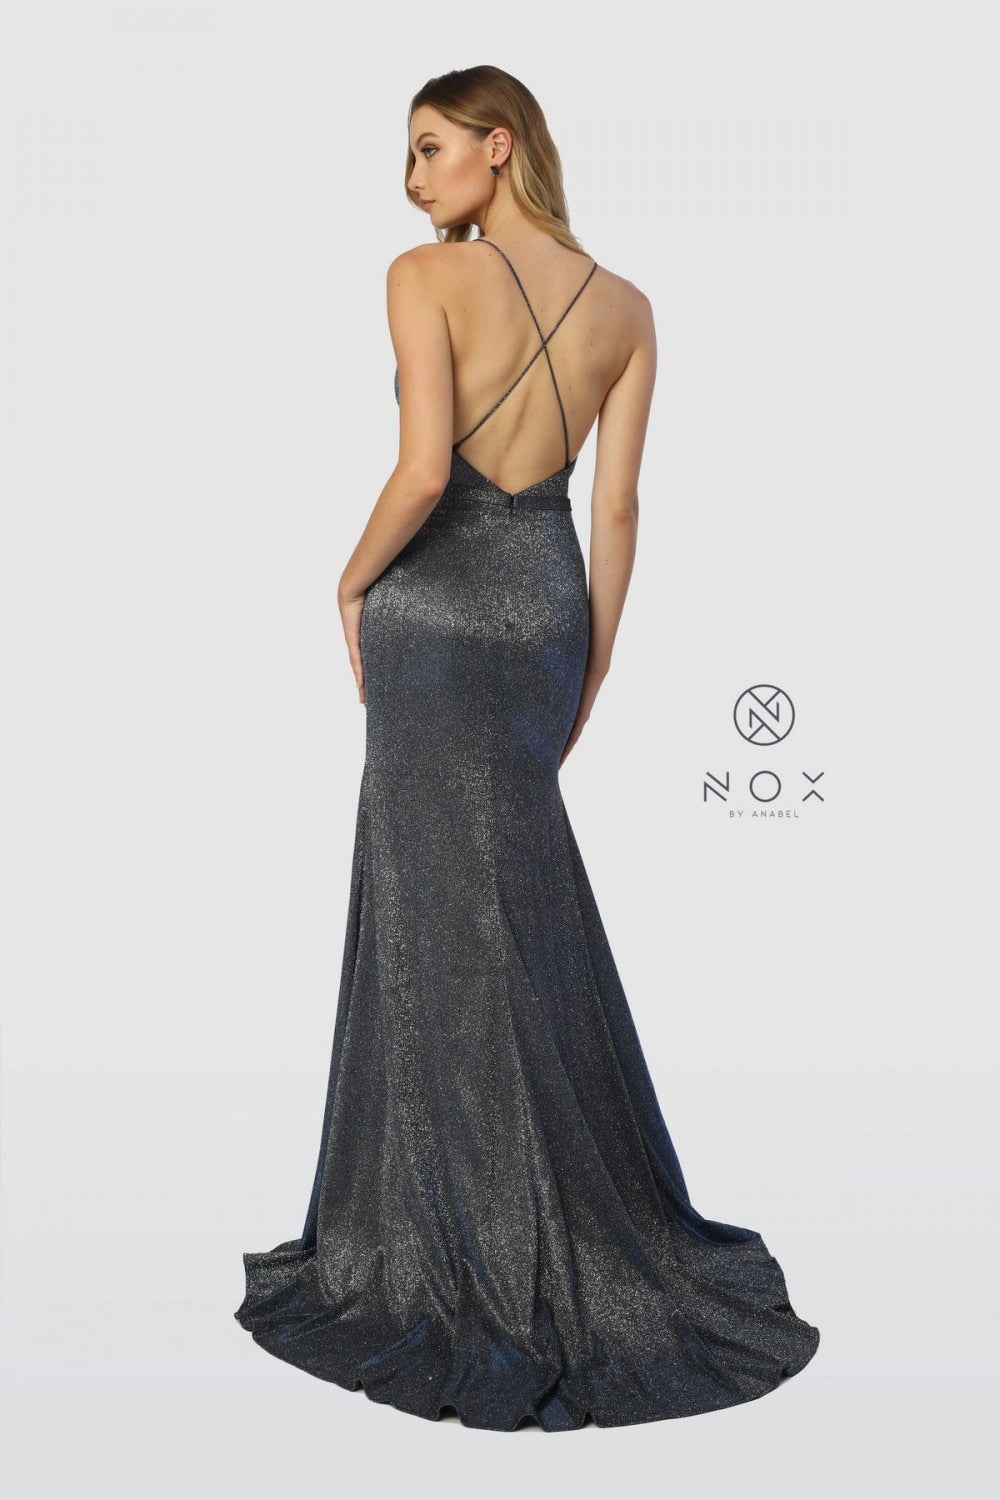 Nox Anabel C238 Plunge Front Evening Dress